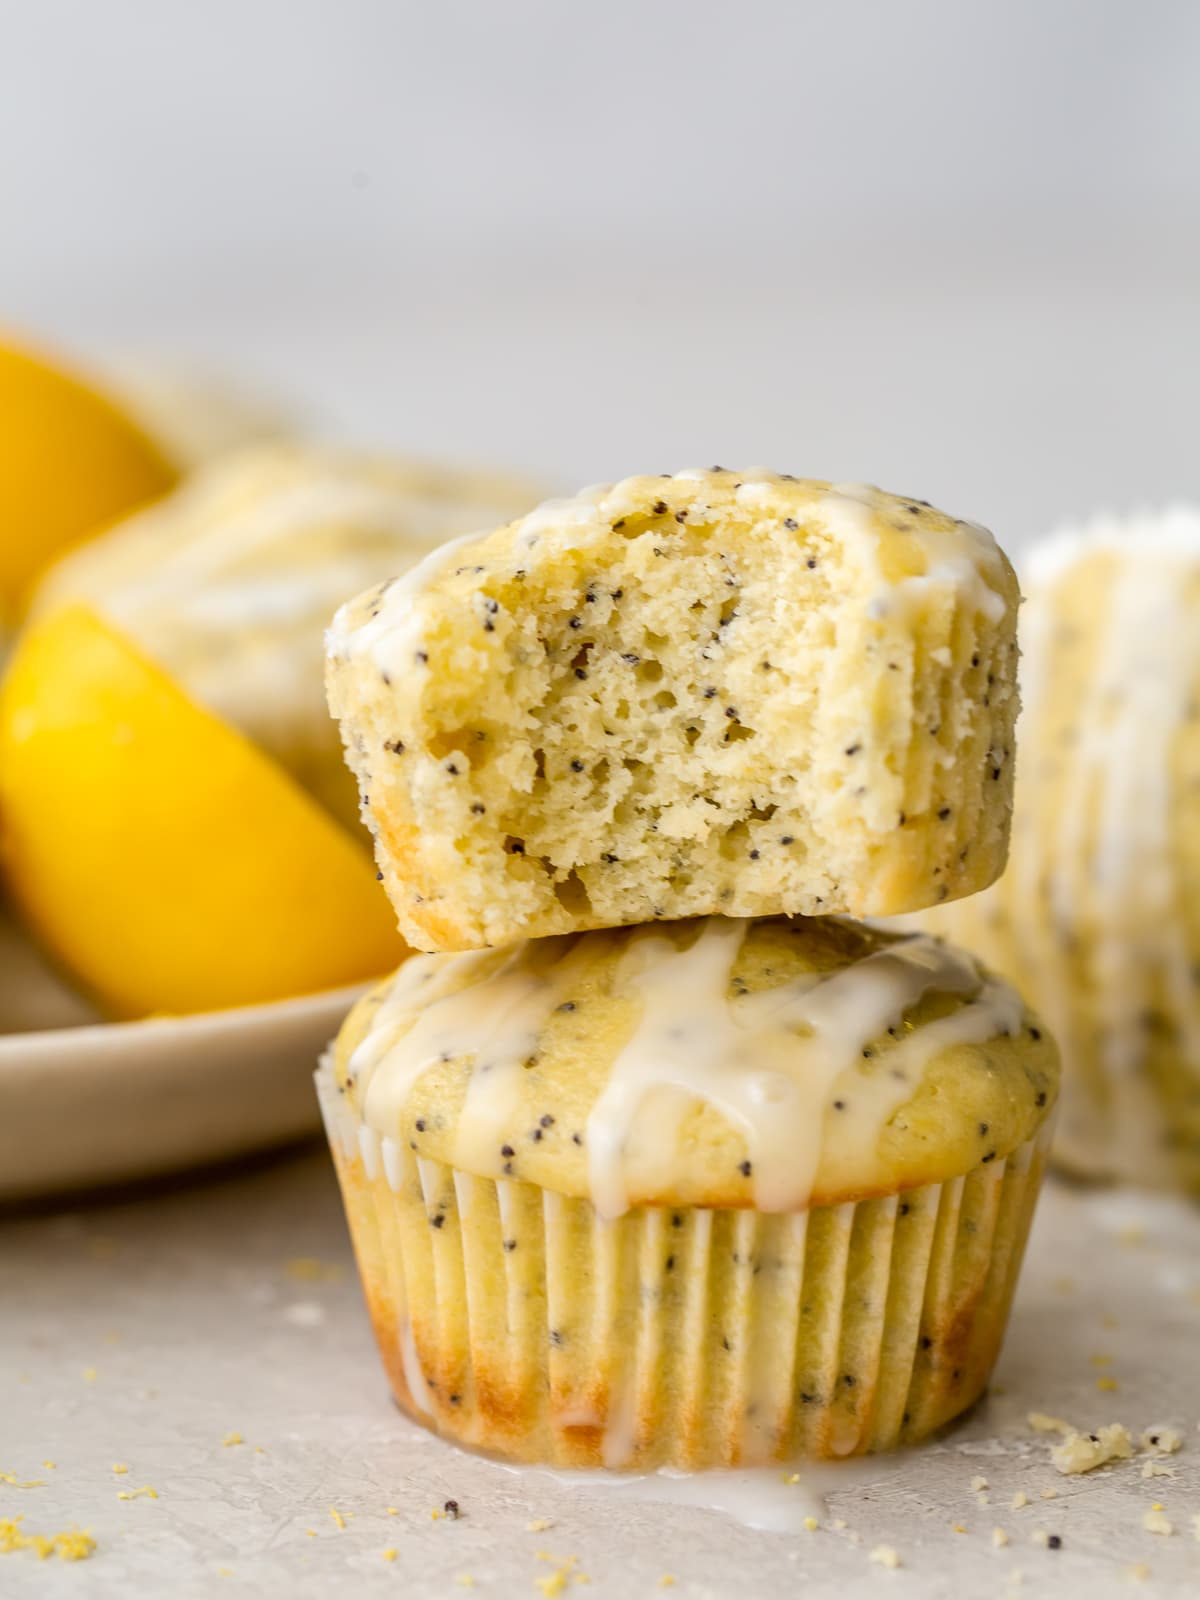 lemon poppy seed muffin with a bite stacked on top of another muffin